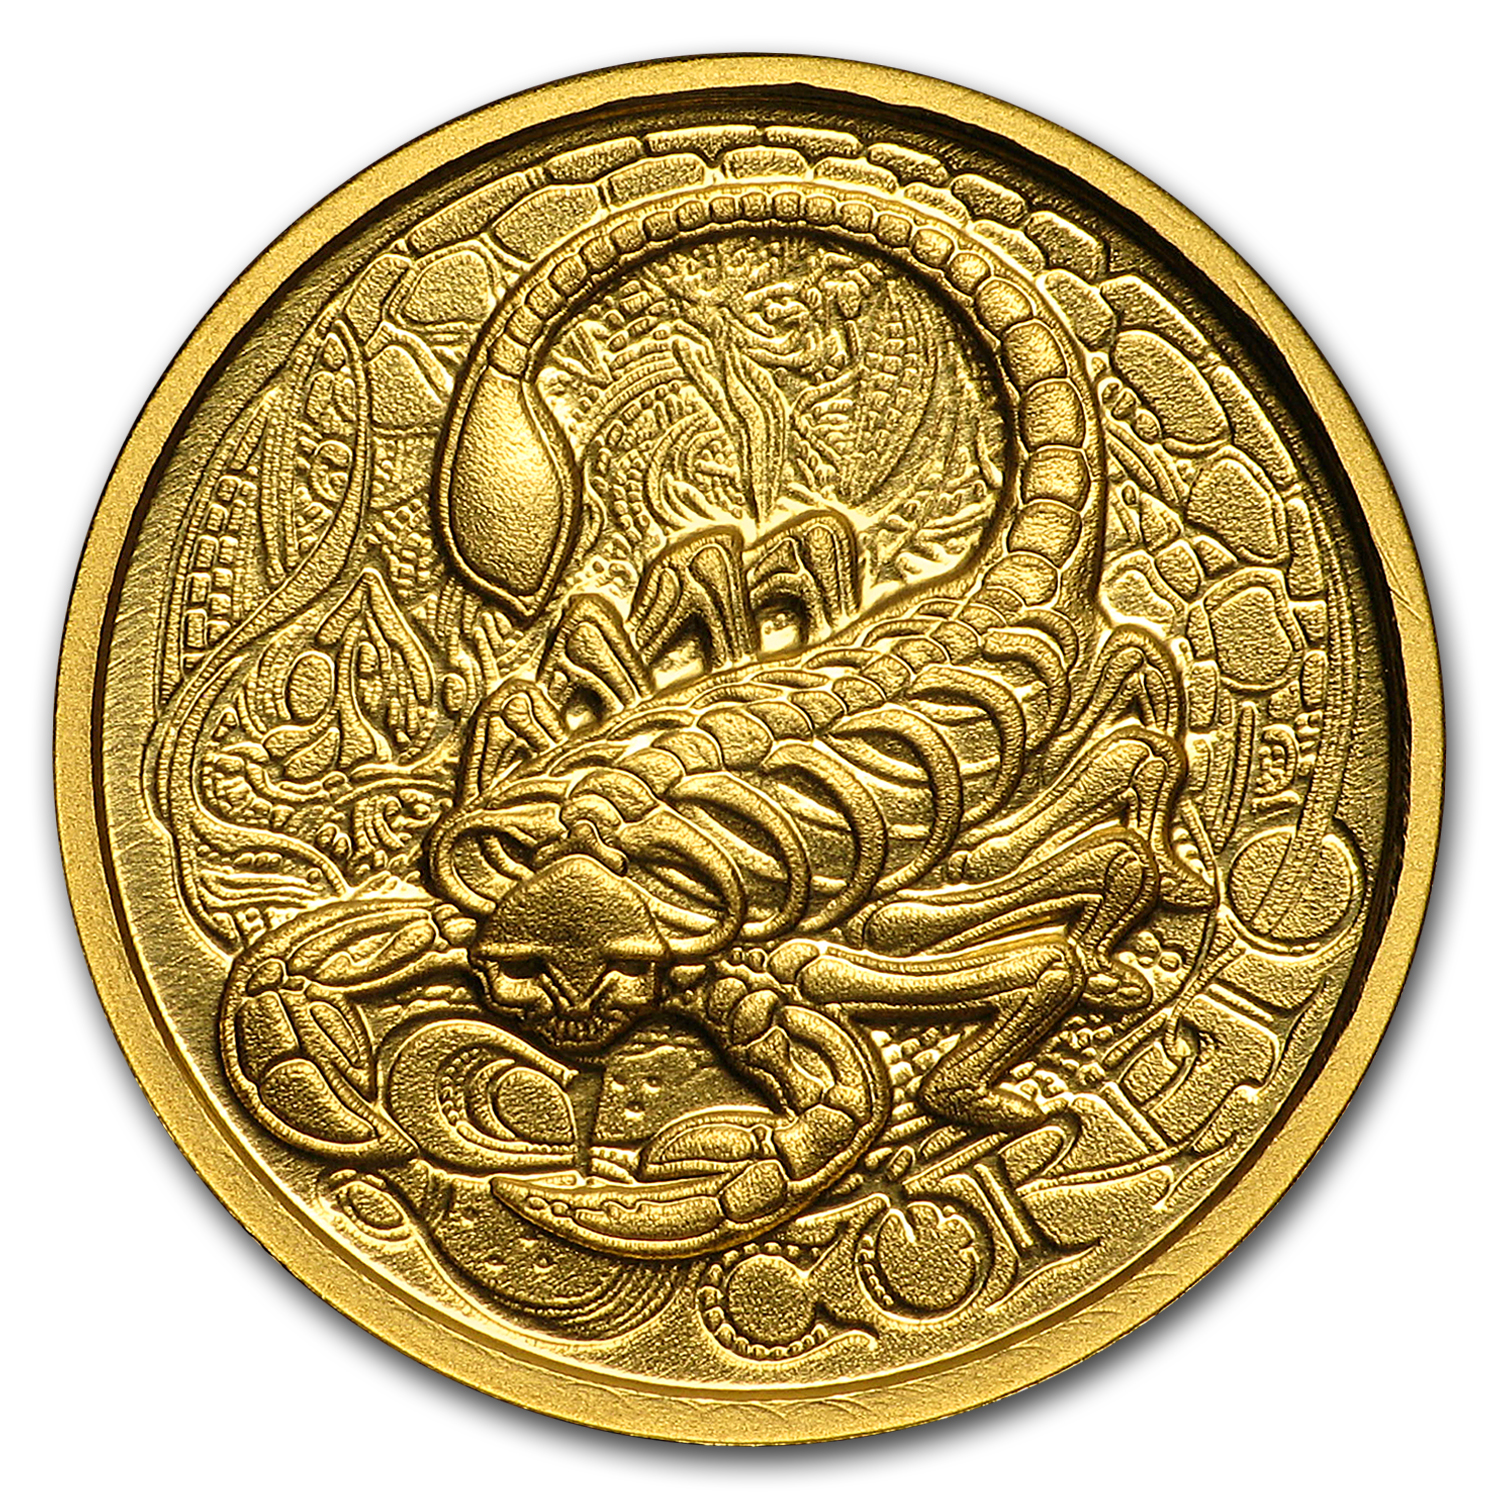 1/10 oz Gold Proof Round - Zodiac Skull Series (Scorpio)